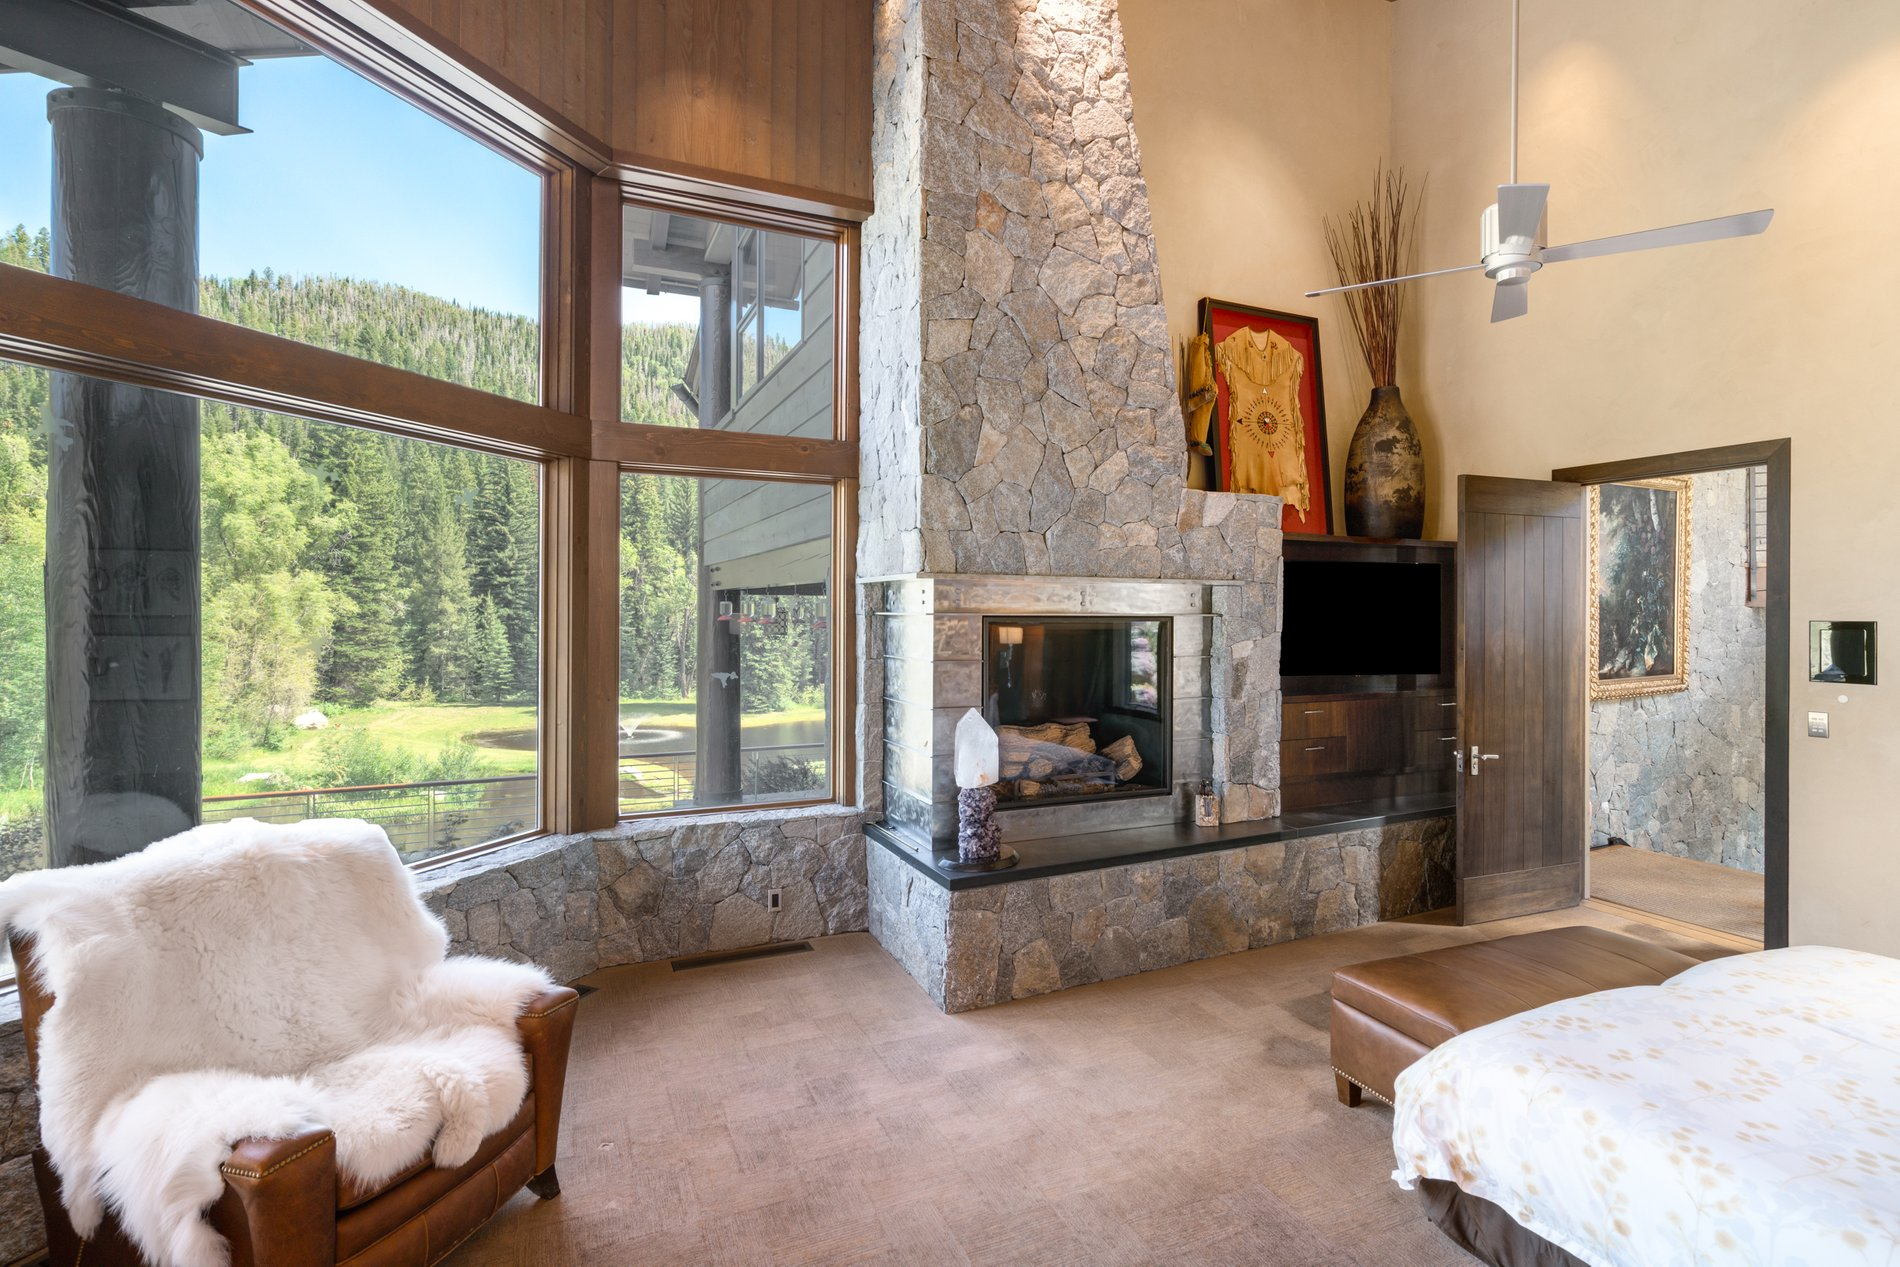 Real stone master bedroom fireplace with wood burning firebox.